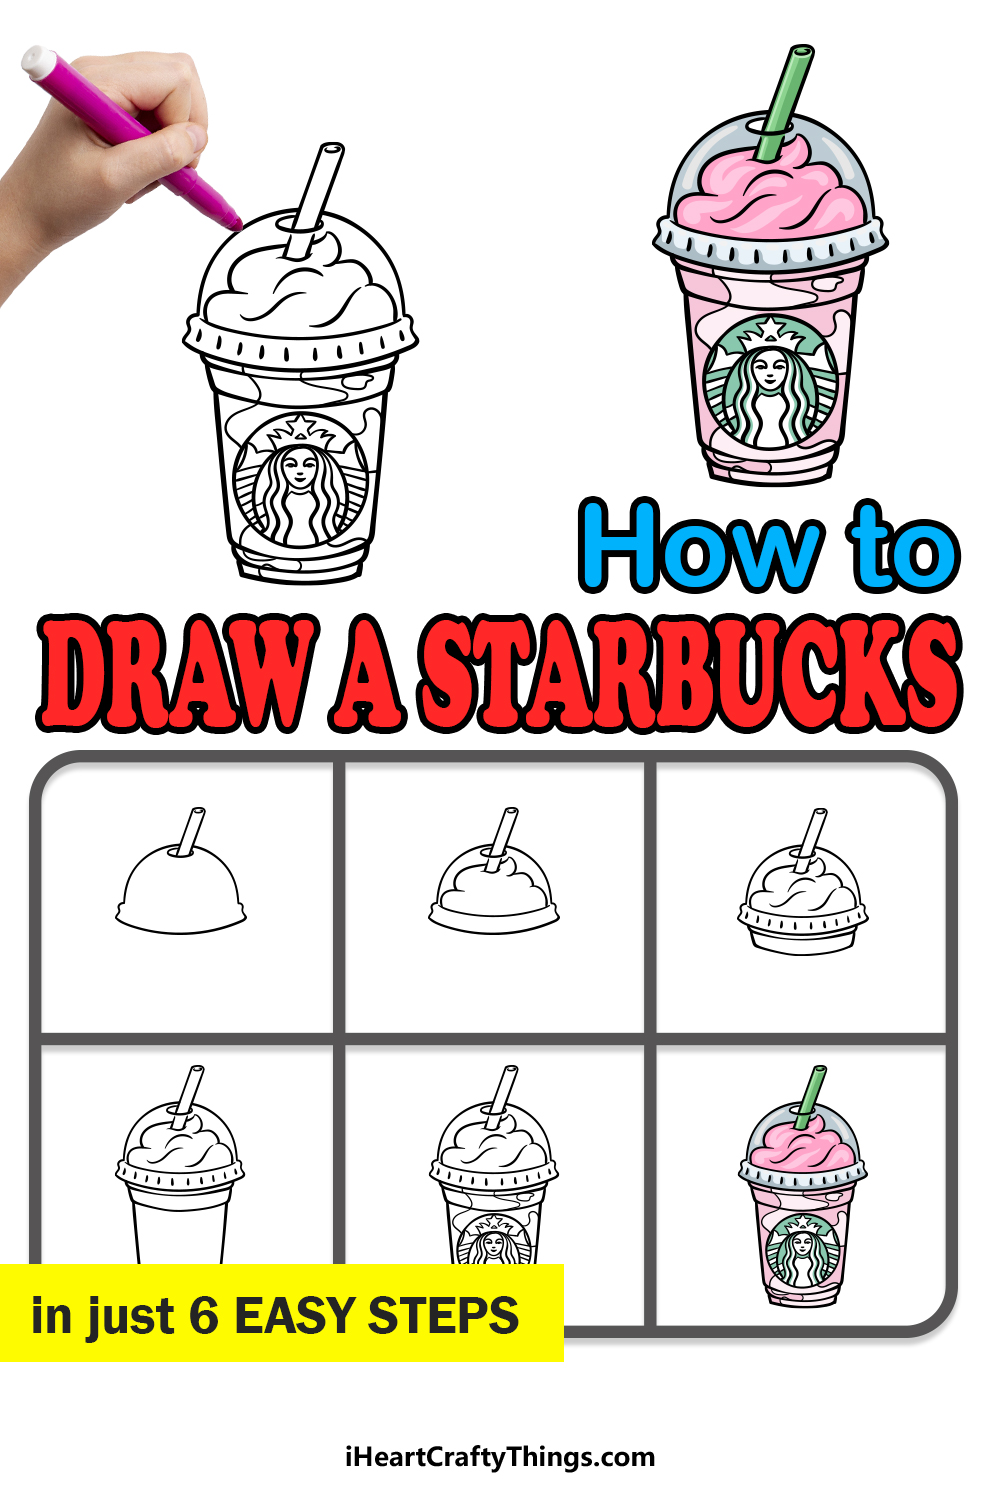 how to draw Starbucks in 6 easy steps